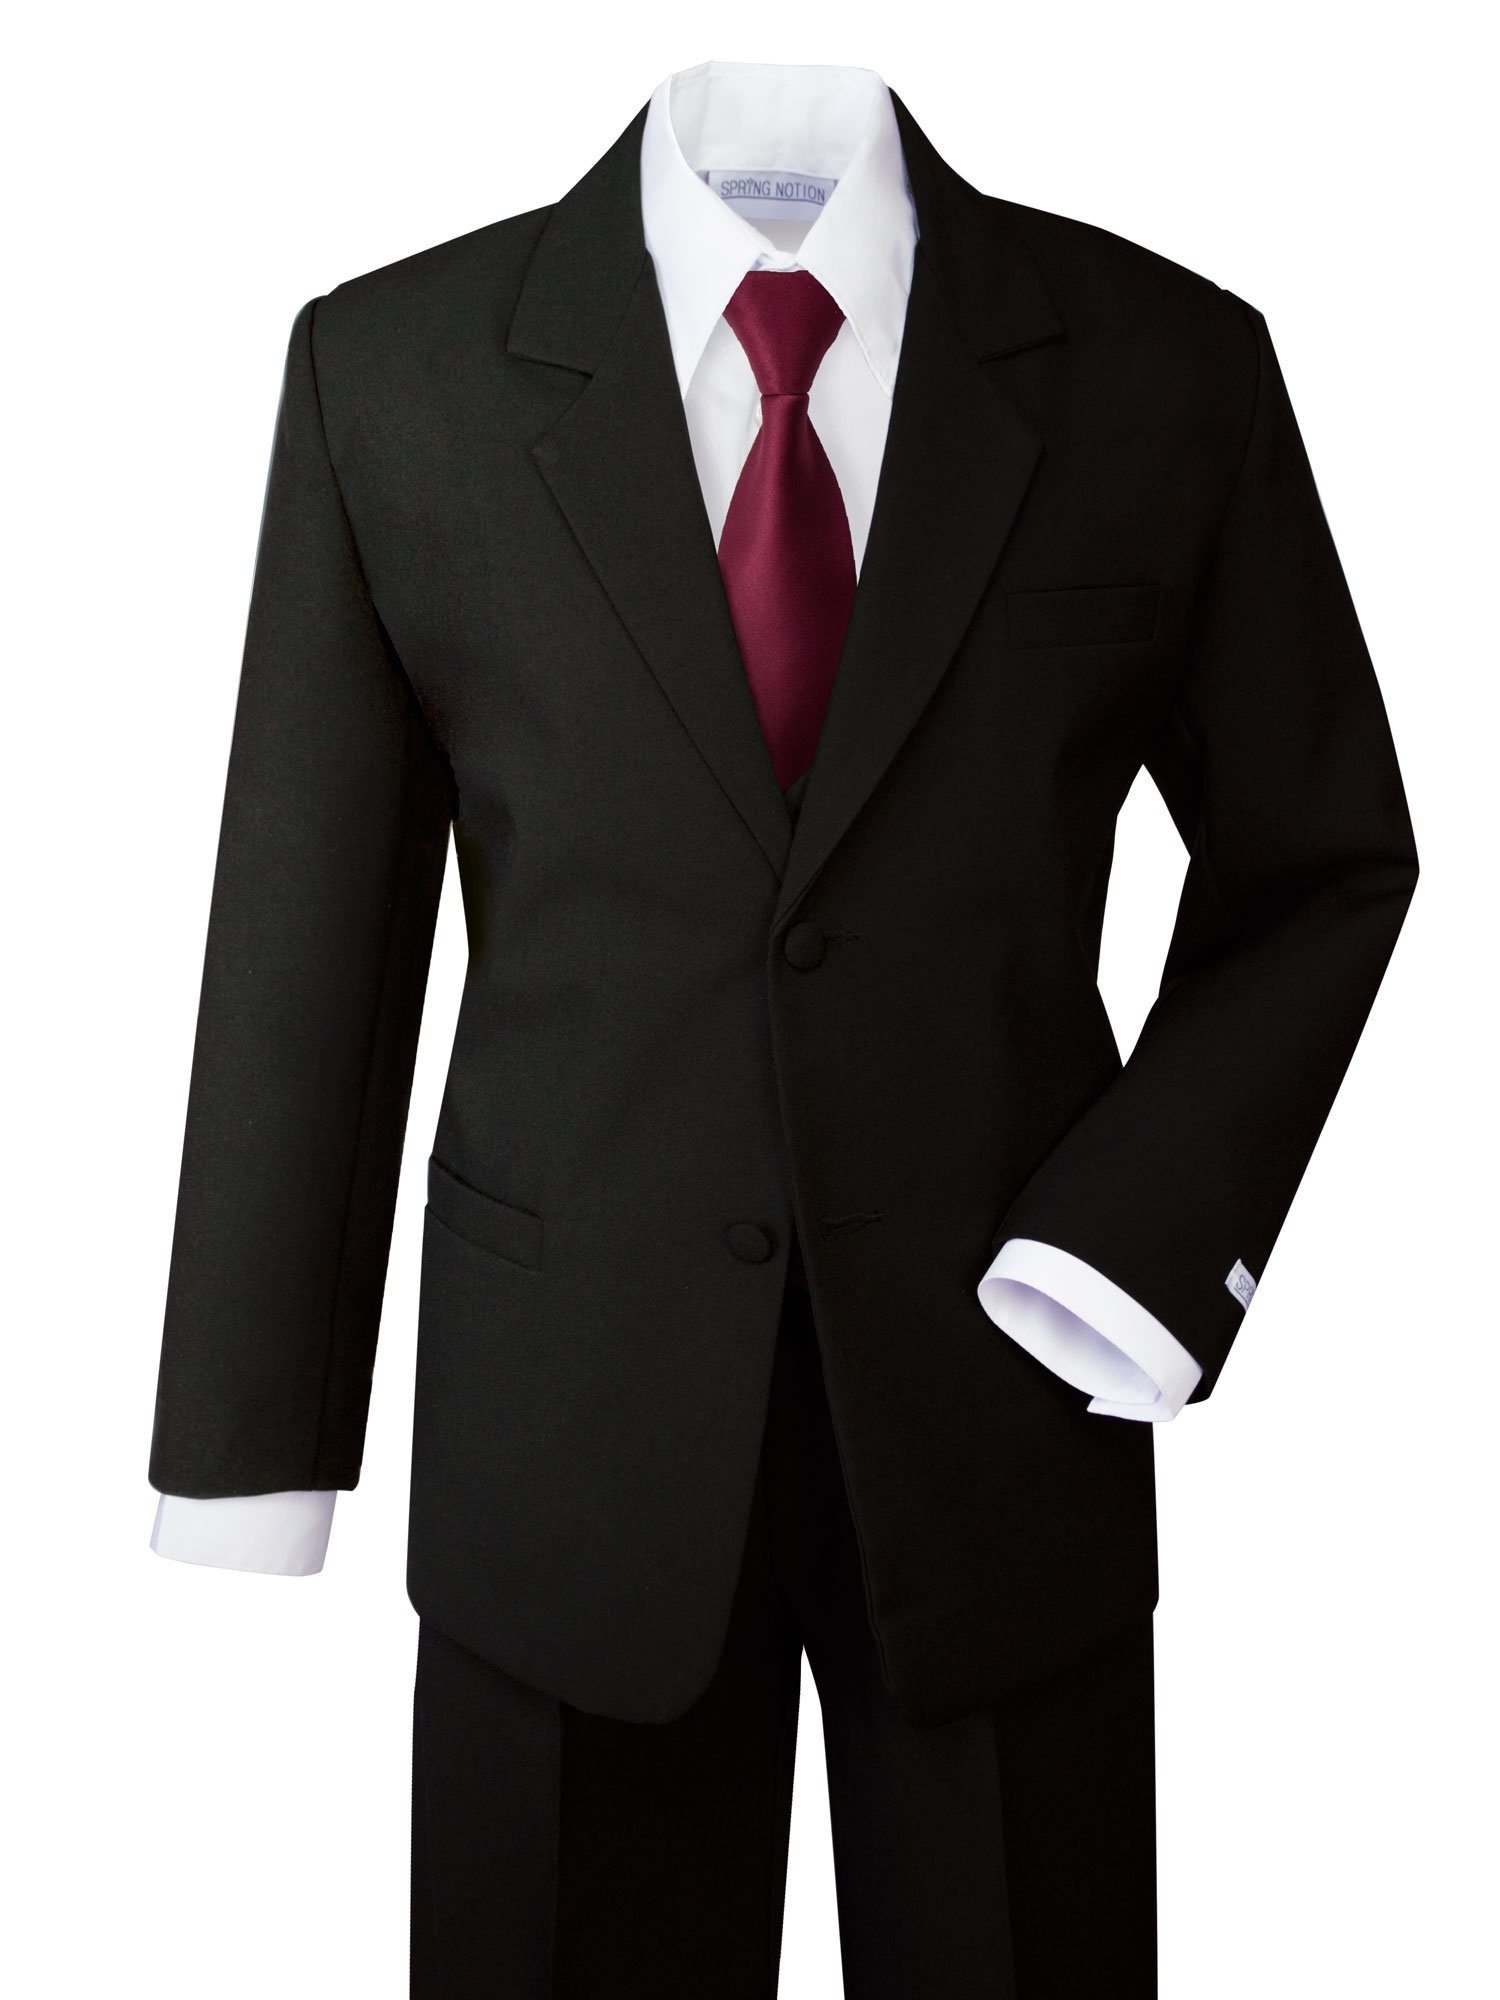 Spring Notion Boys' Formal Dress Suit Set 10 Black Suit Burgundy Tie